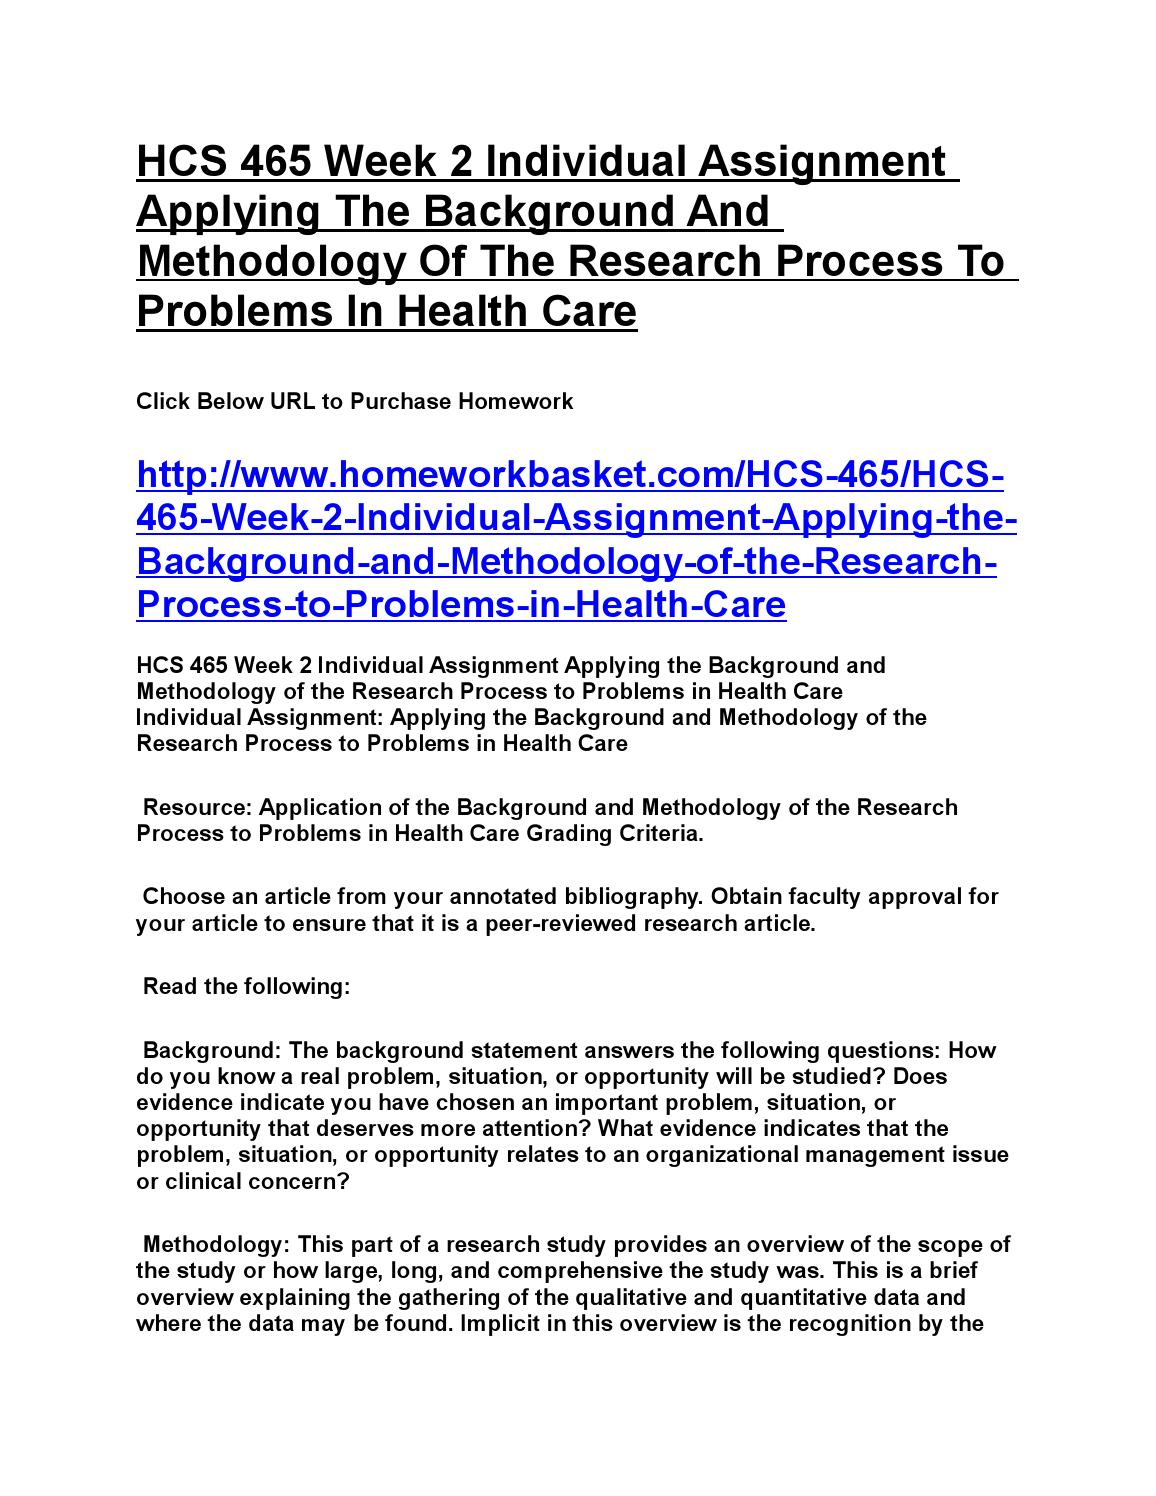 HCS 465 Week 4 Individual Assignment - Evaluating the Research Process